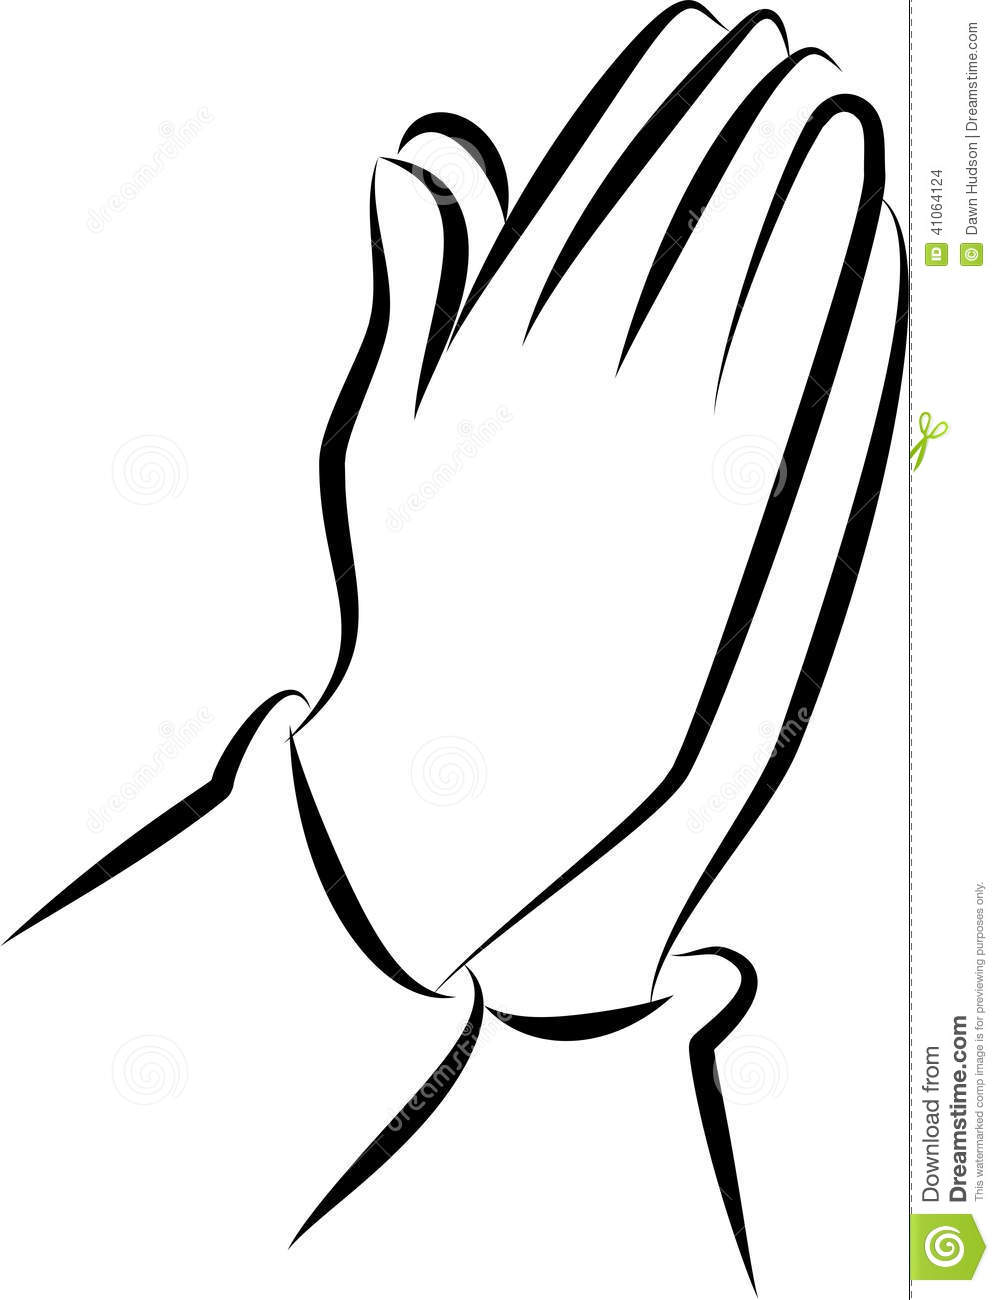 praying hands clip art stock illustration illustration of faith rh dreamstime com